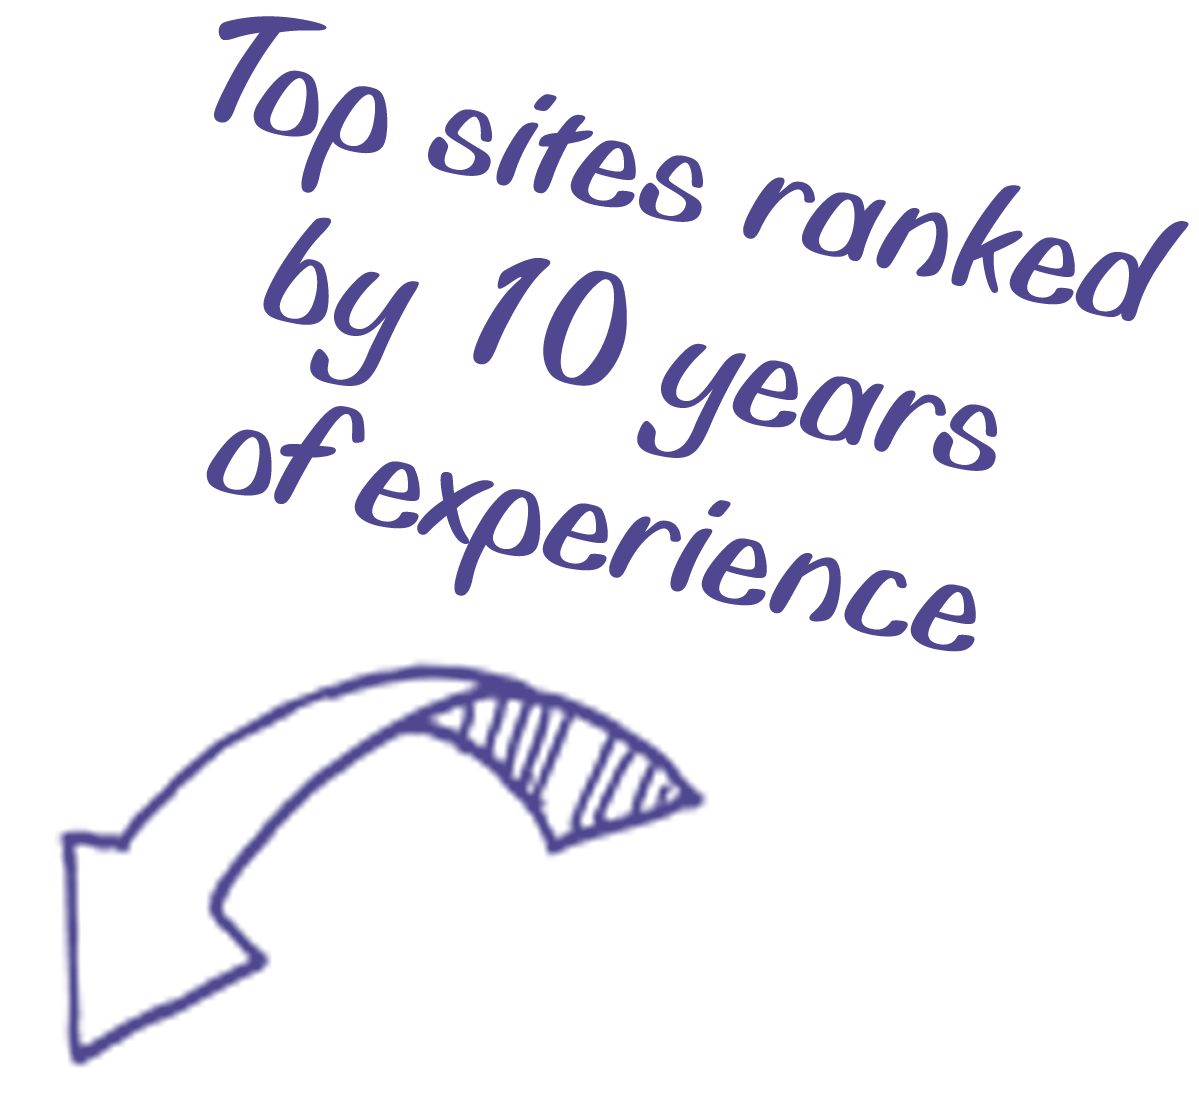 Top sites ranked by 10 years of experience